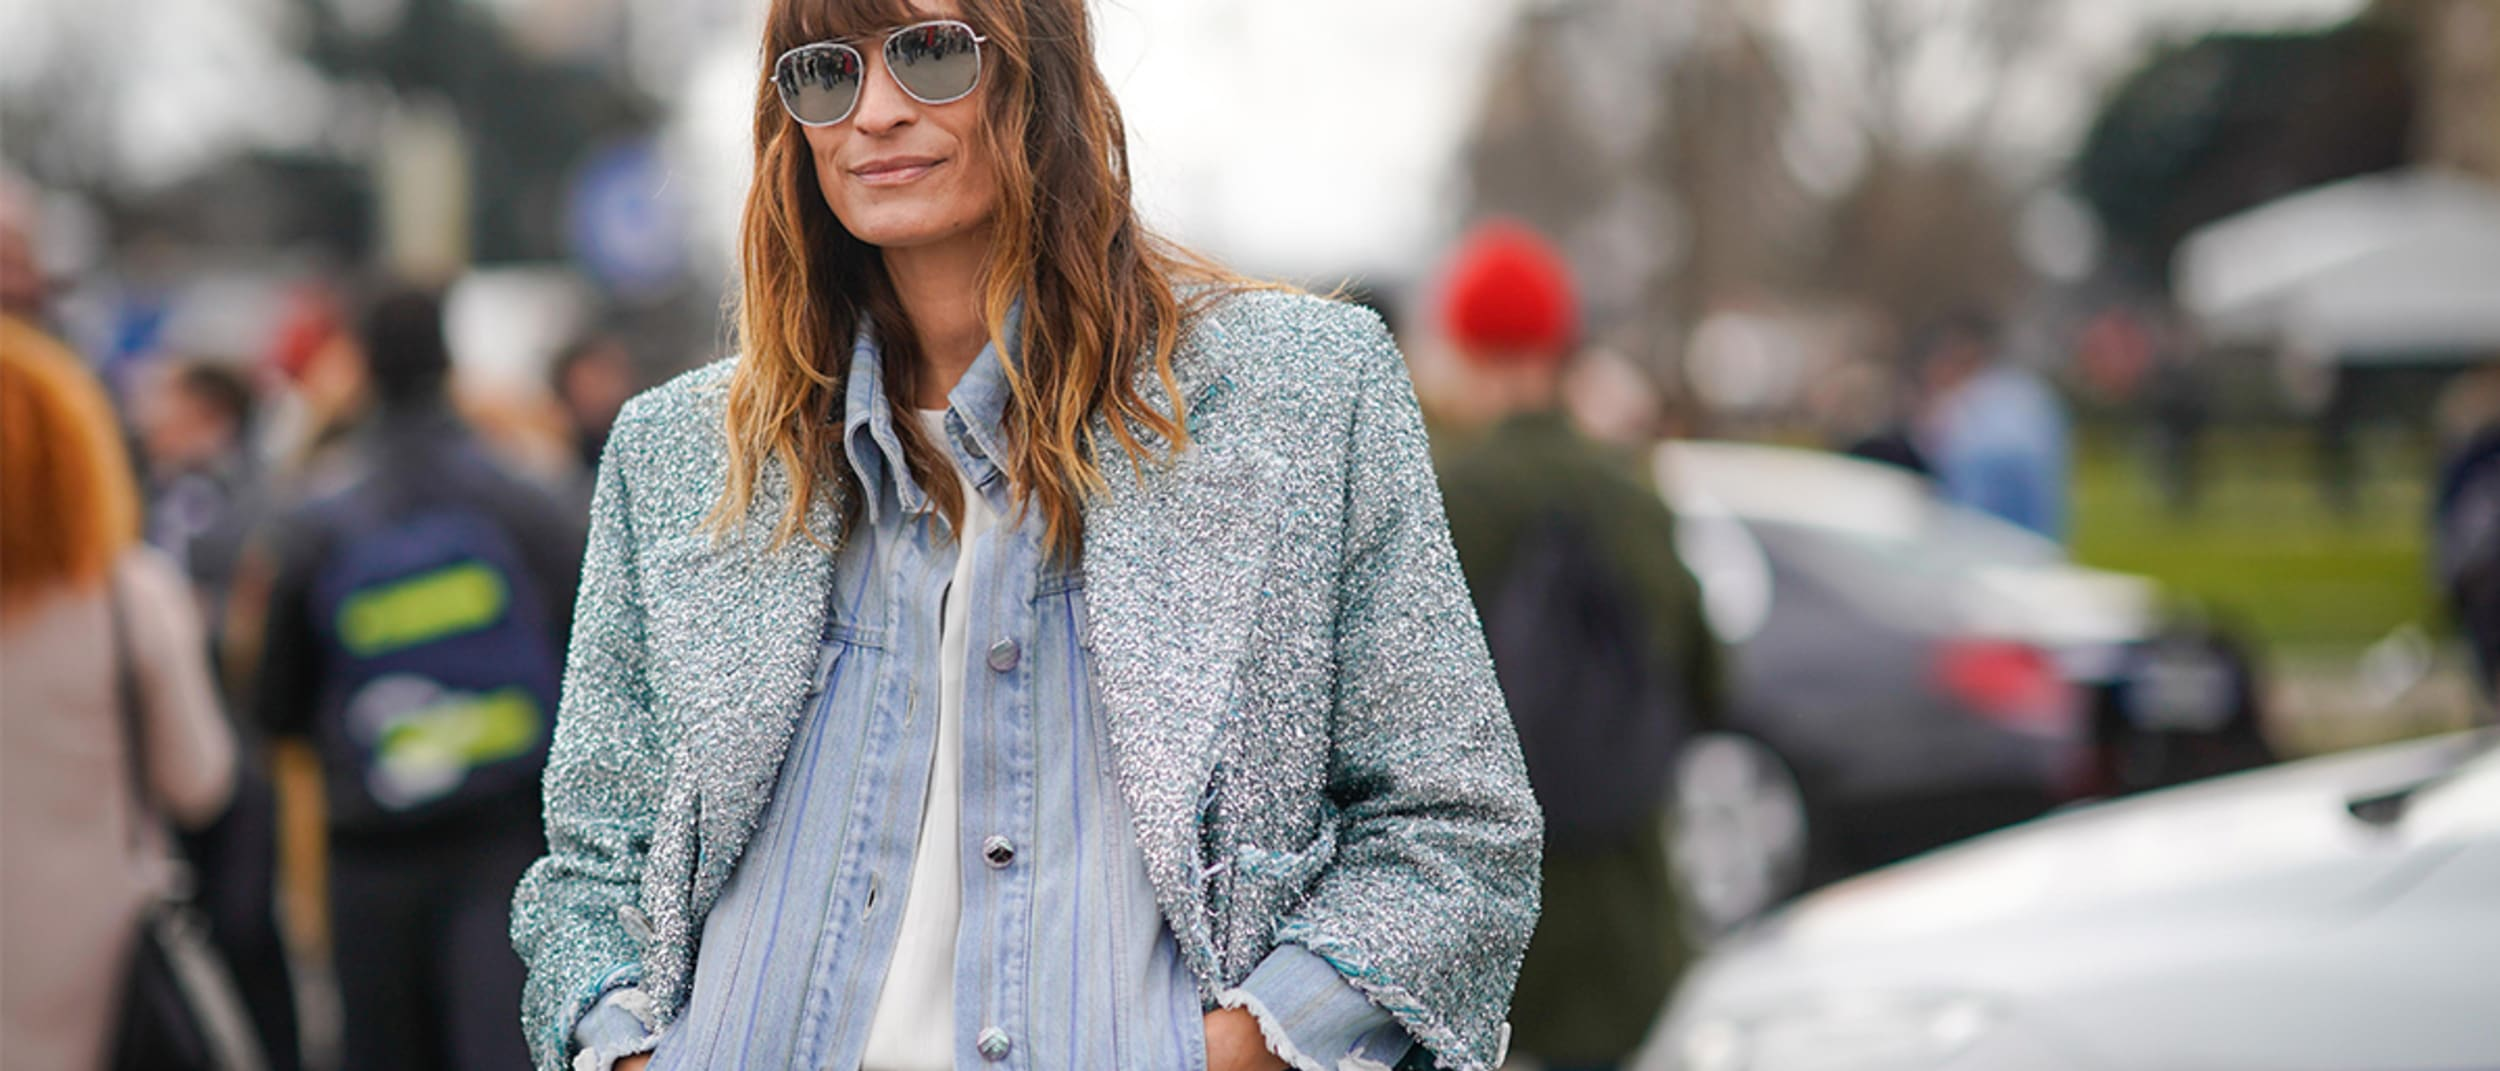 Casual cool: how to wear relaxed denim this autumn